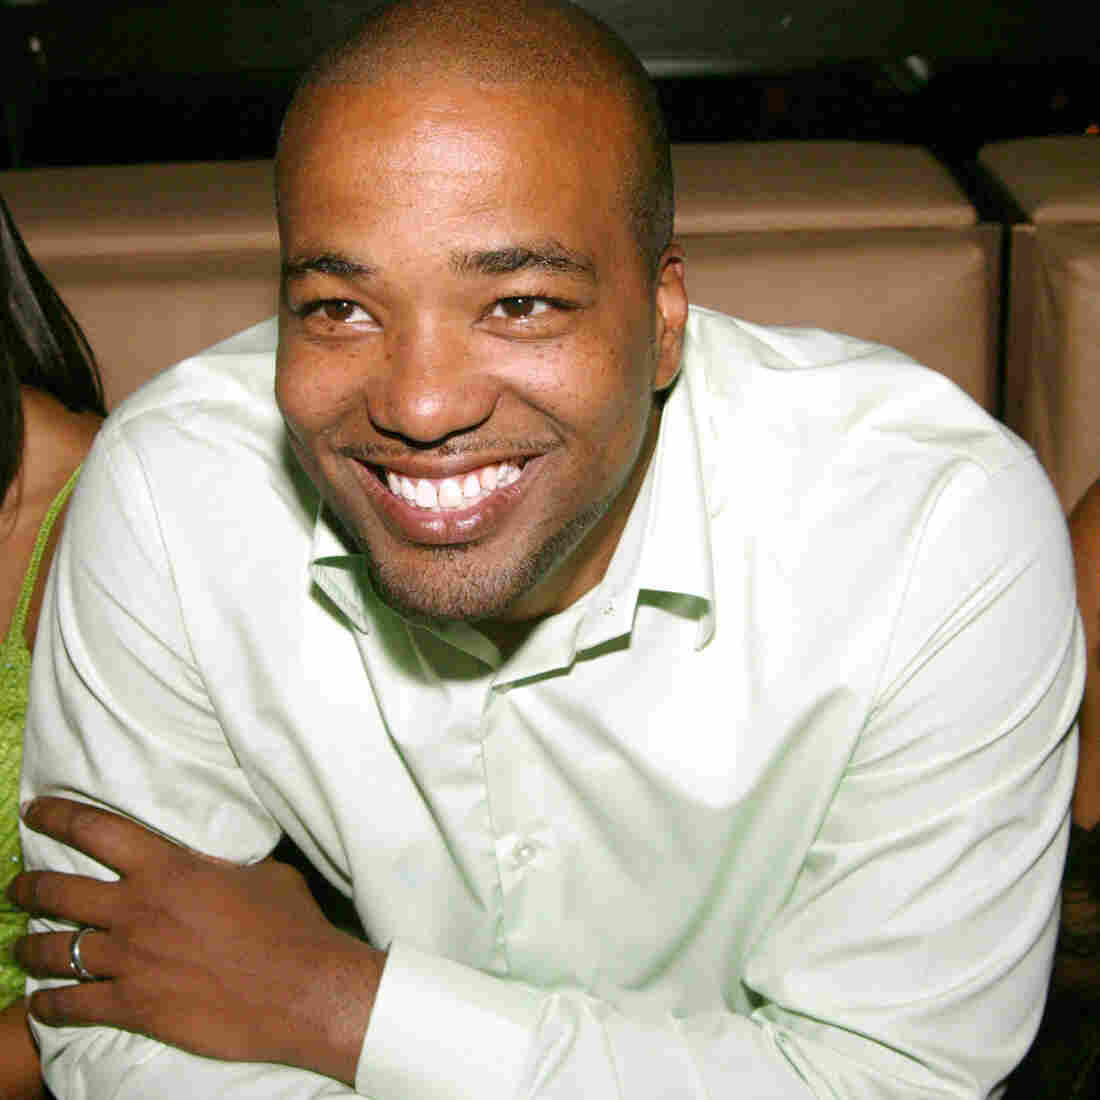 Remembering Chris Lighty, Hip-Hop Leader And My Friend